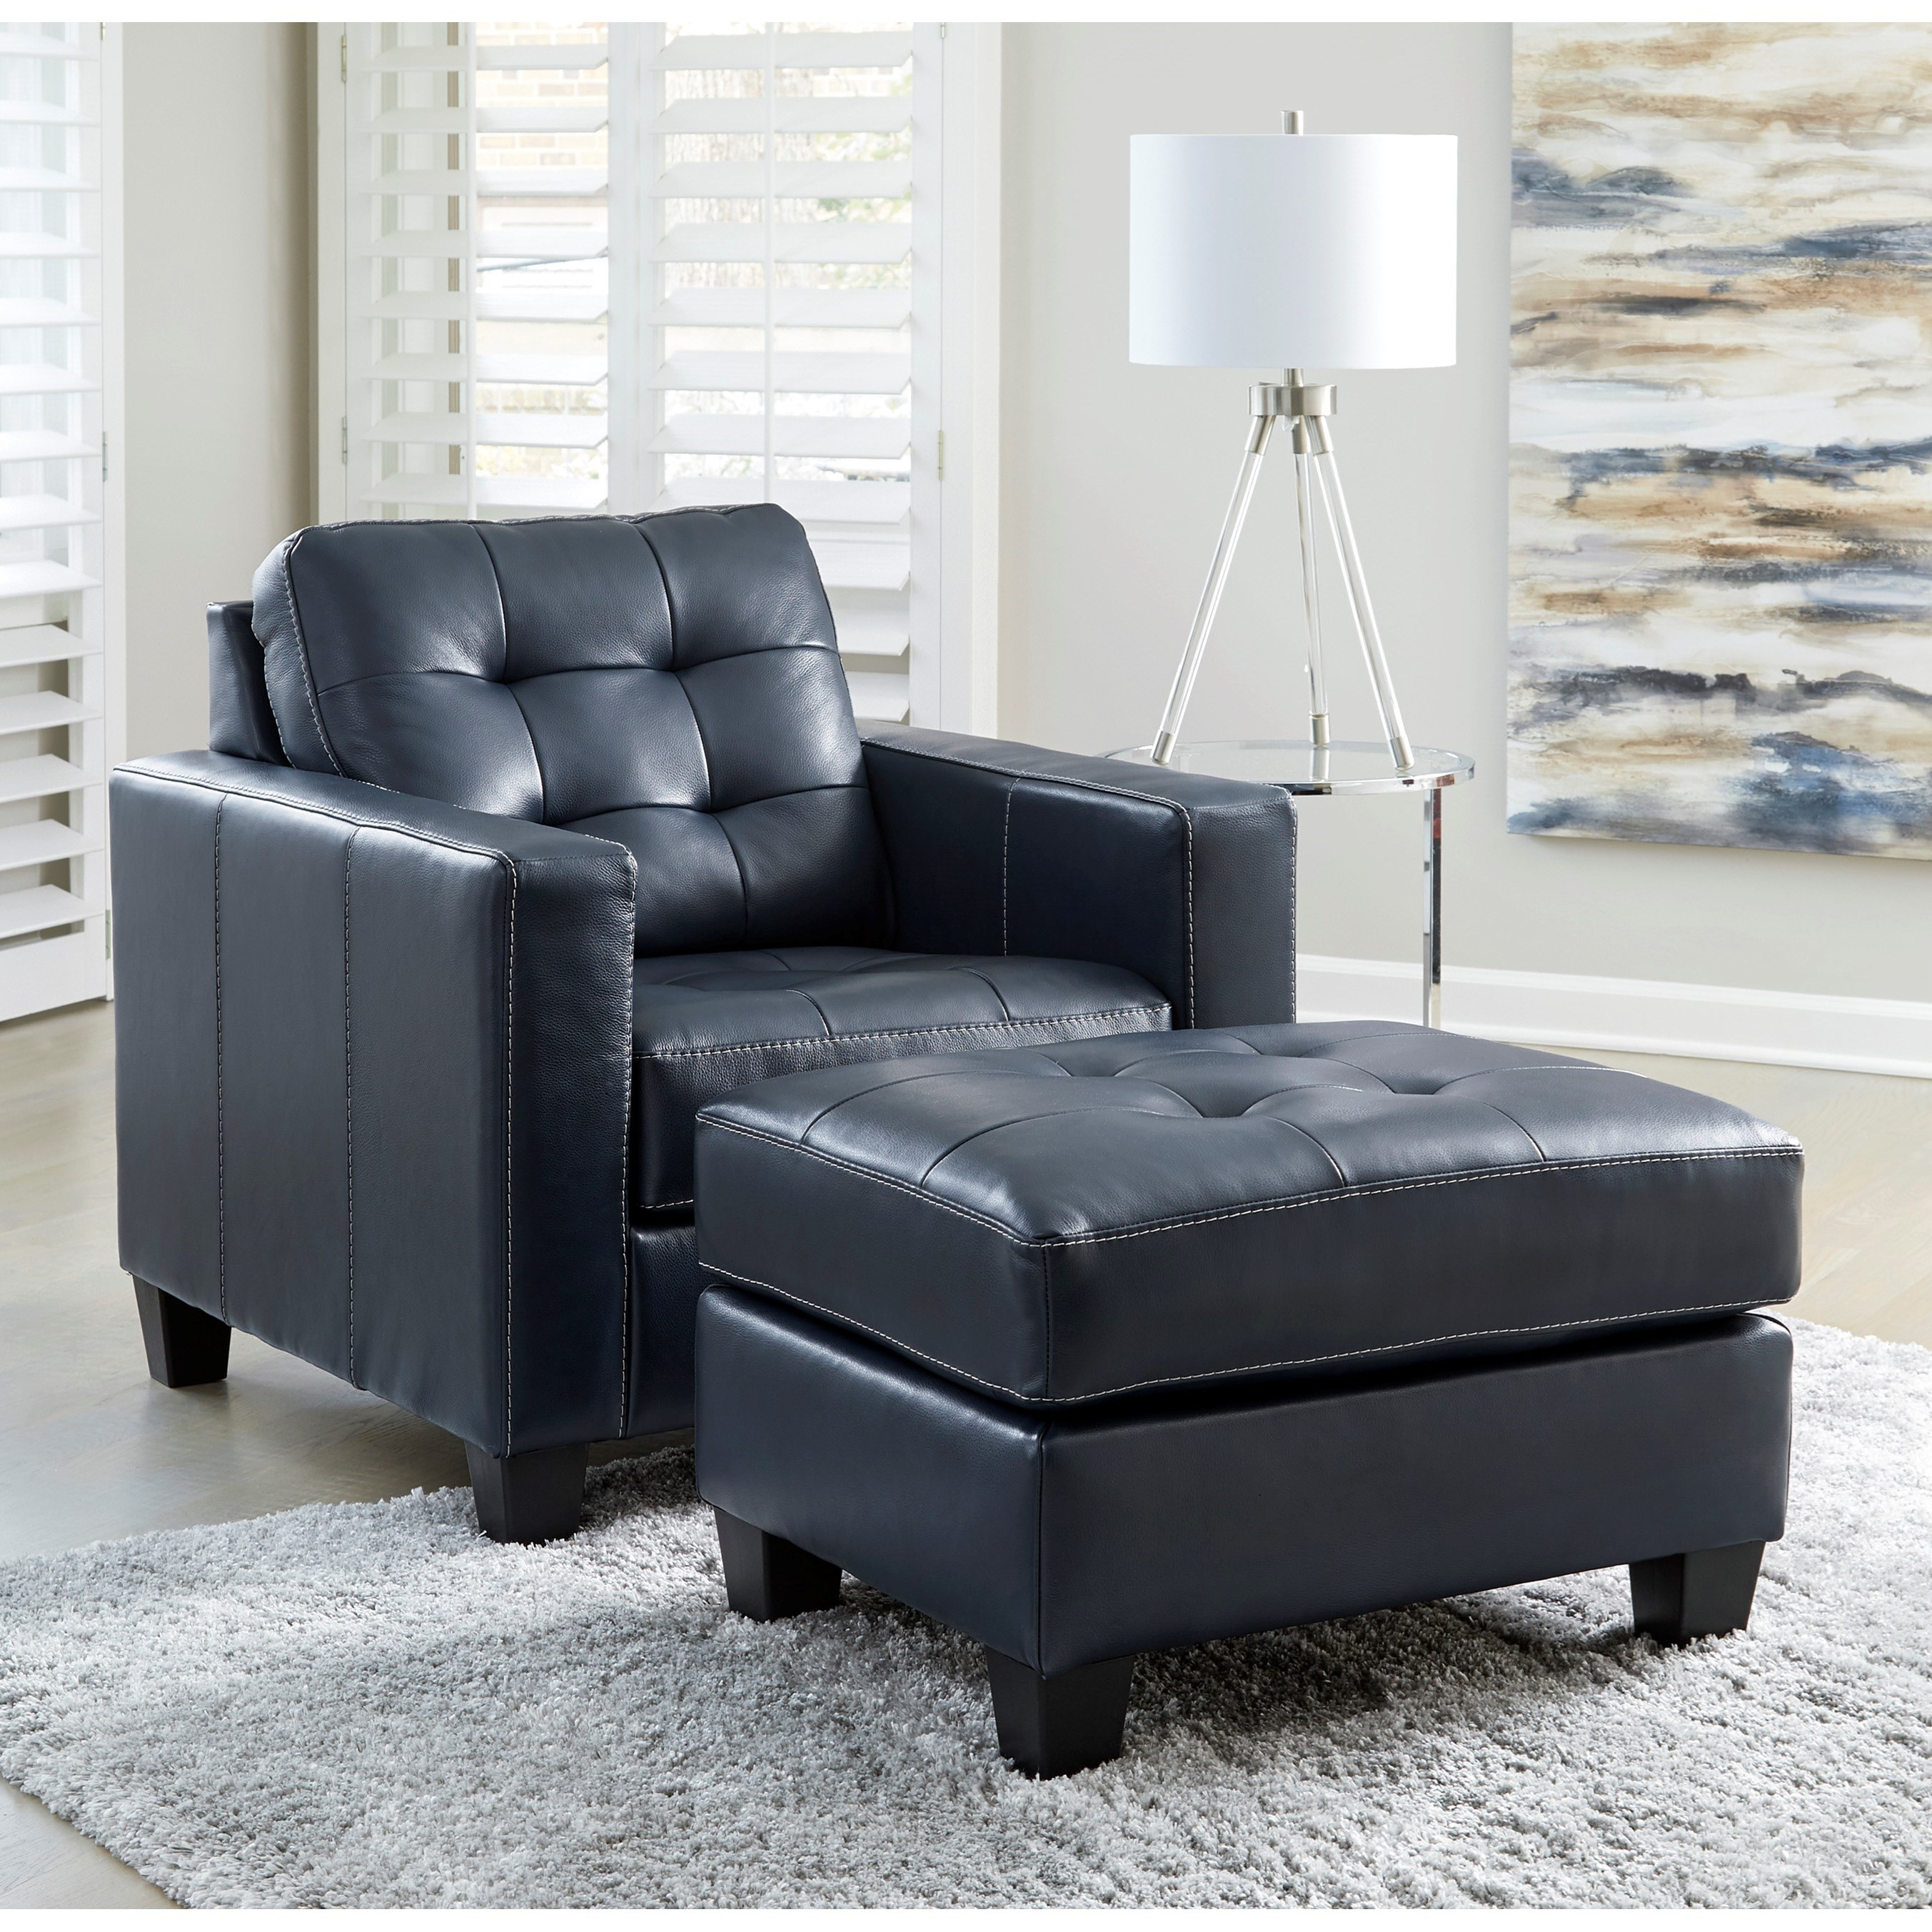 Altonbury Chair and Ottoman Set by Signature Design by Ashley at Value City Furniture